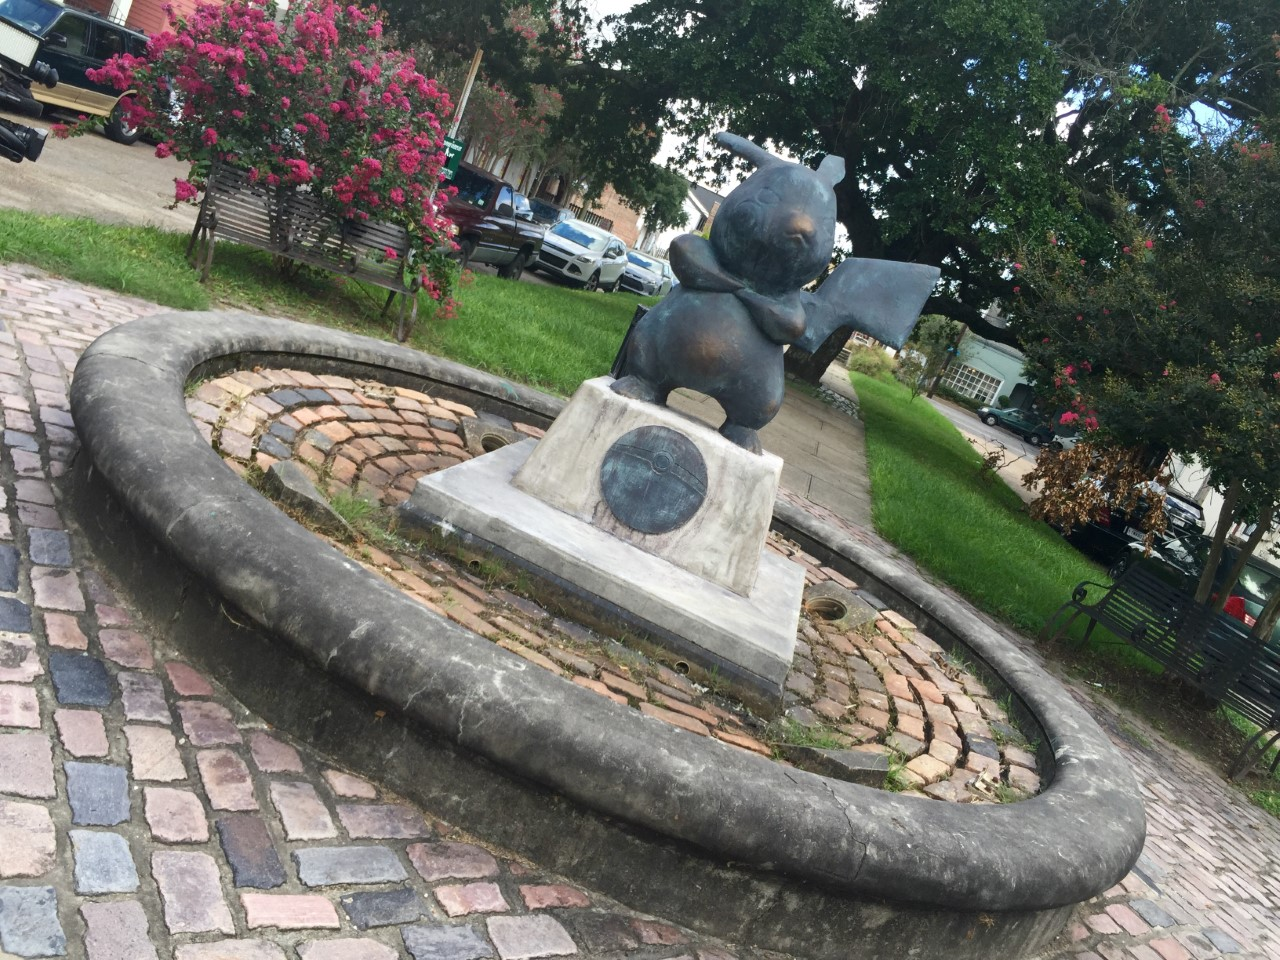 Pikachu statue mysteriously placed in new orleans park - Parking garden district new orleans ...